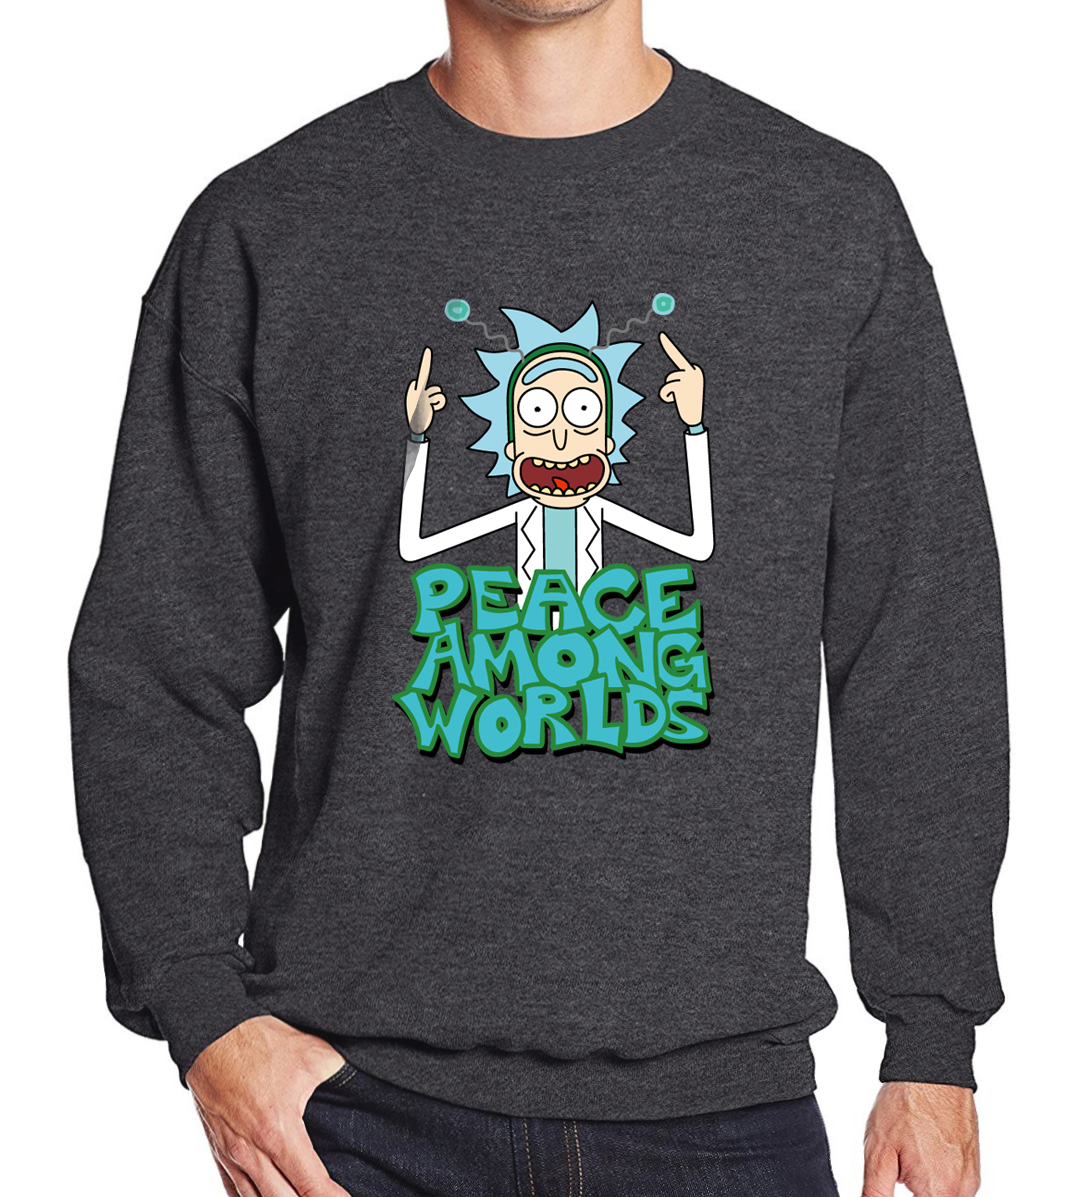 PEACE AMONG WORLDS Print Casual Hoodies 2019 Spring New Hot Sweatshirt For Men Harajuku Pullovers Hip Hop RICK AND MORTY Hoody